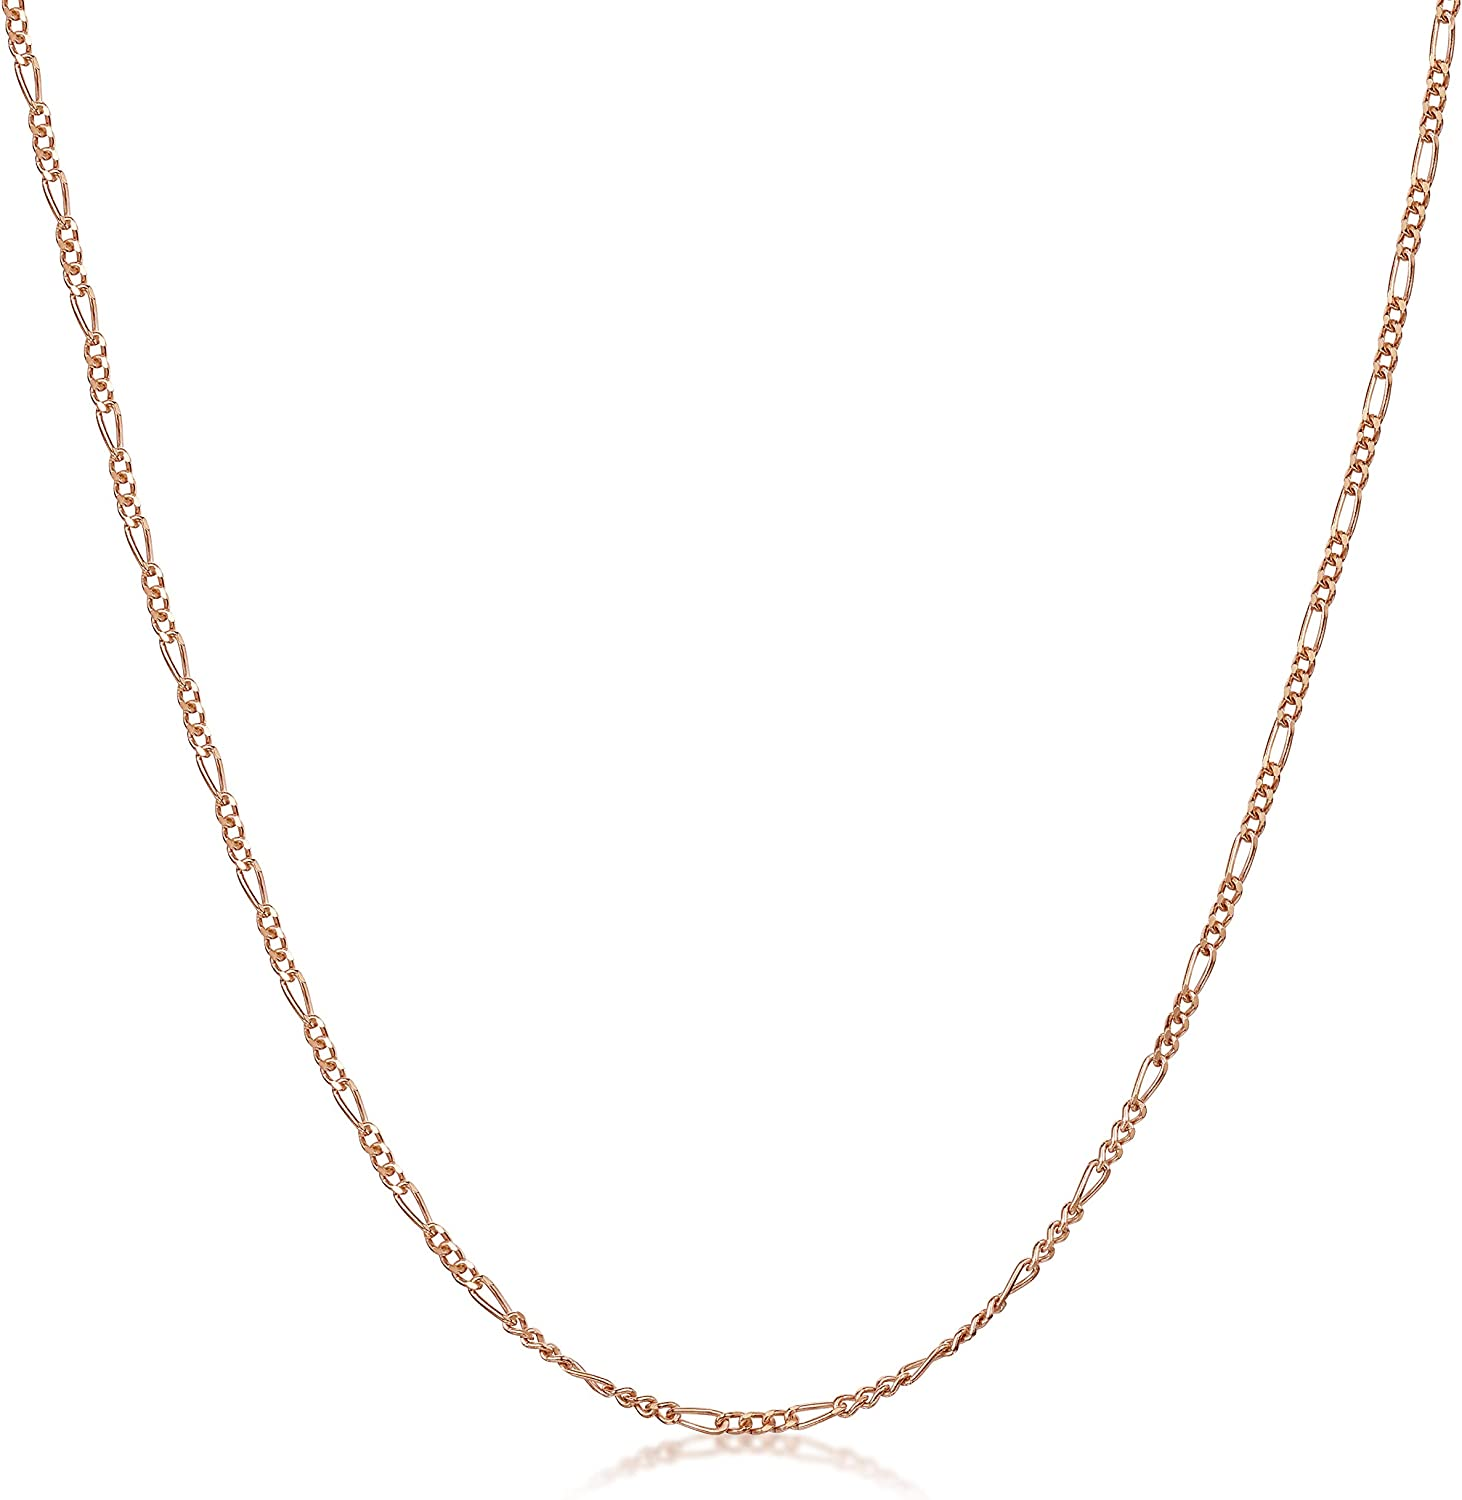 14K Rose Gold Plated on 925 Sterling Silver 1.5 mm Figaro Chain Necklace 14 16 18 20 22 24 in